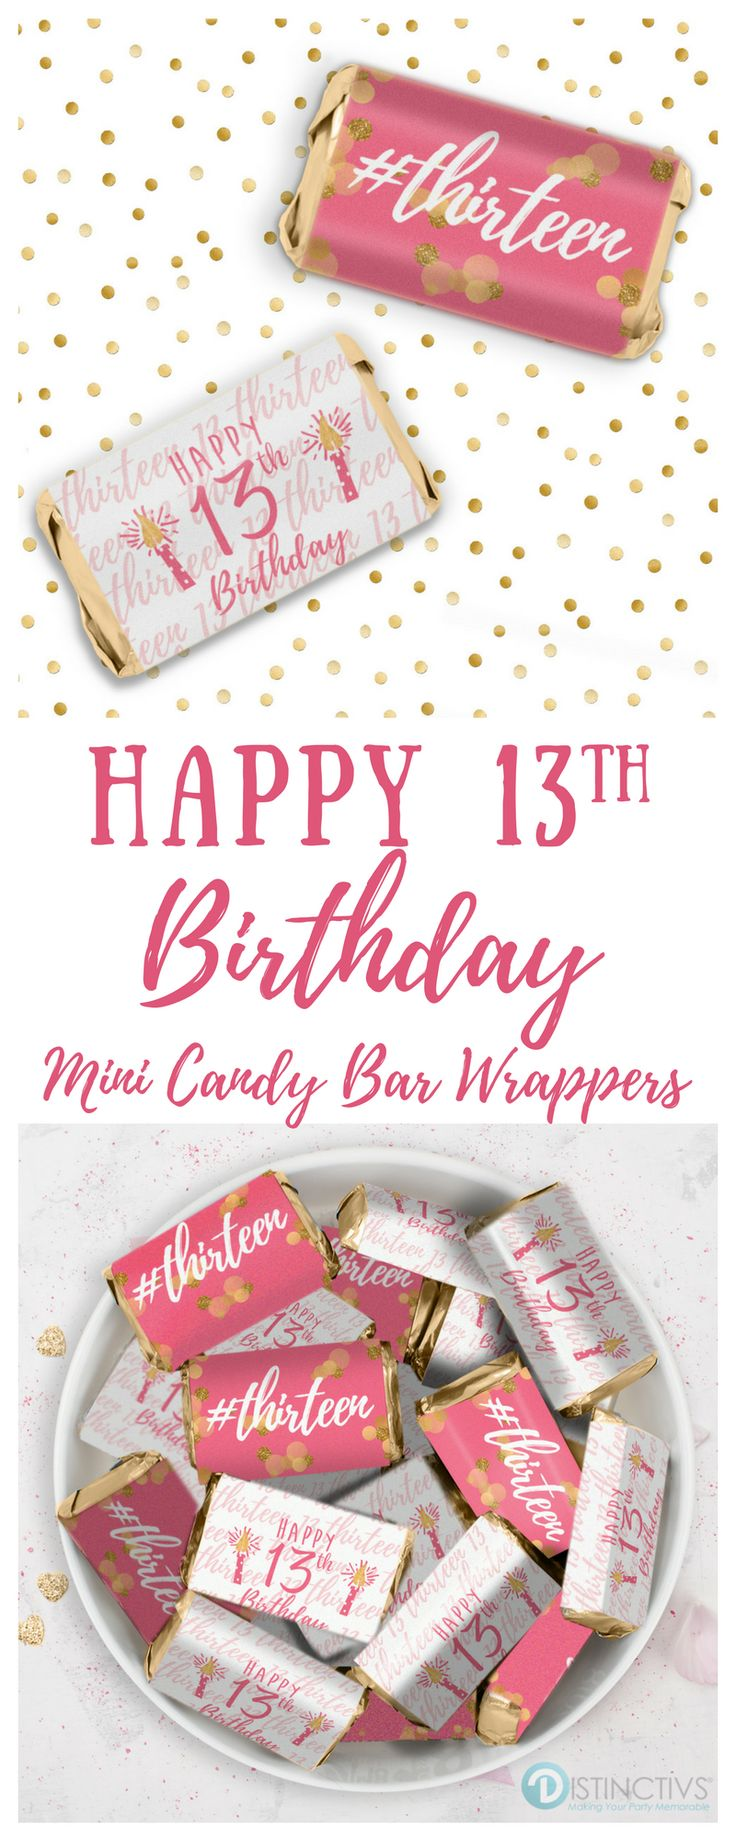 25 best 13th Birthday Party images on Pinterest | Birthdays, 13th ...